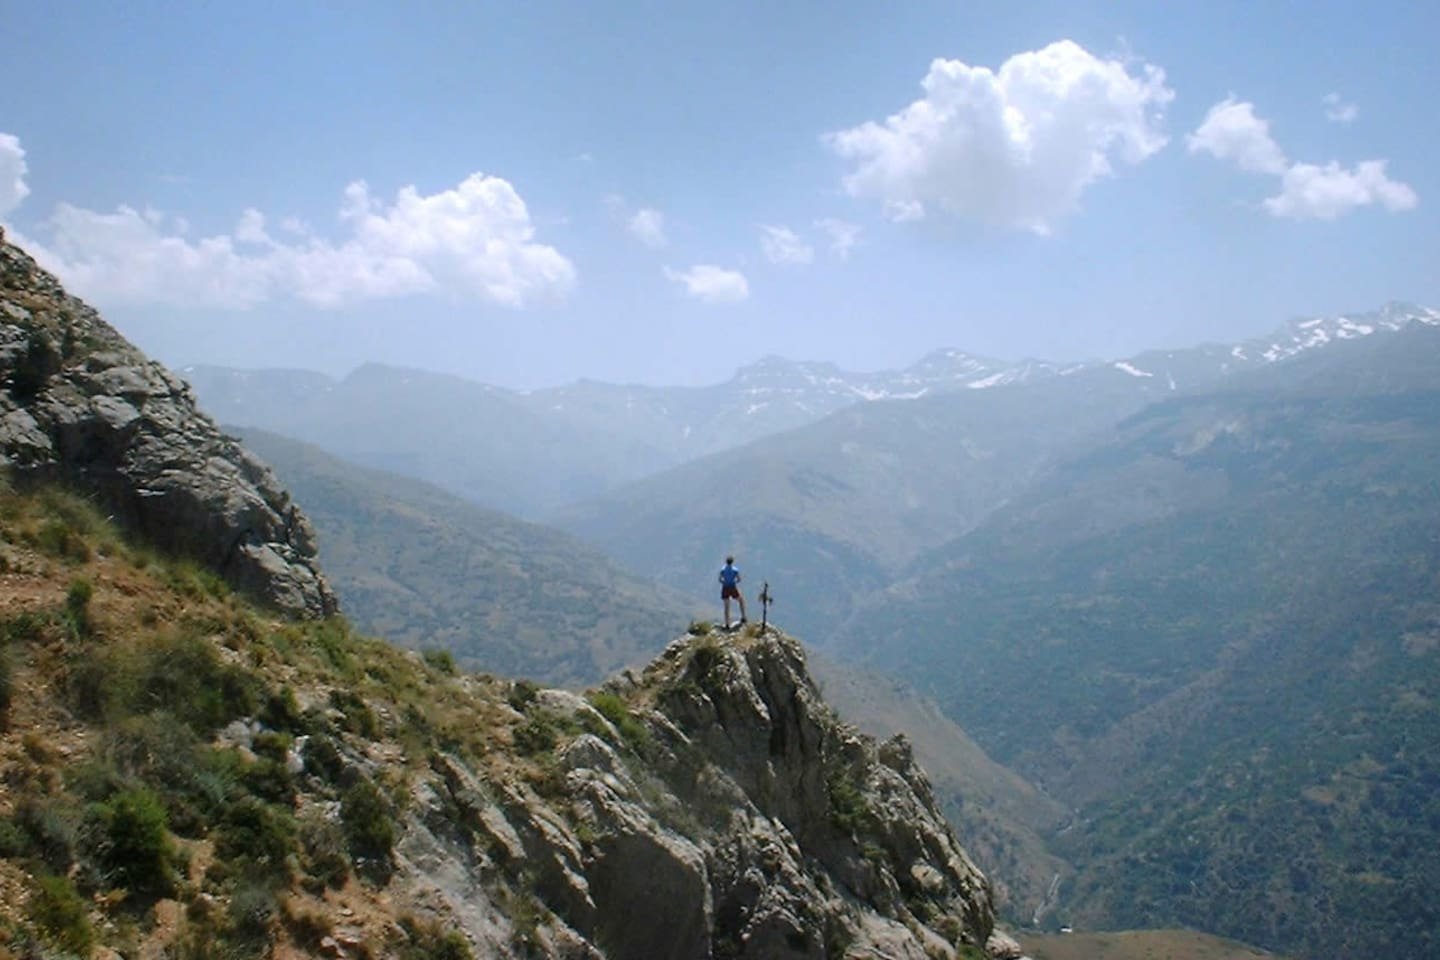 On top of the world - a local hike (photo by Roundthedowel)